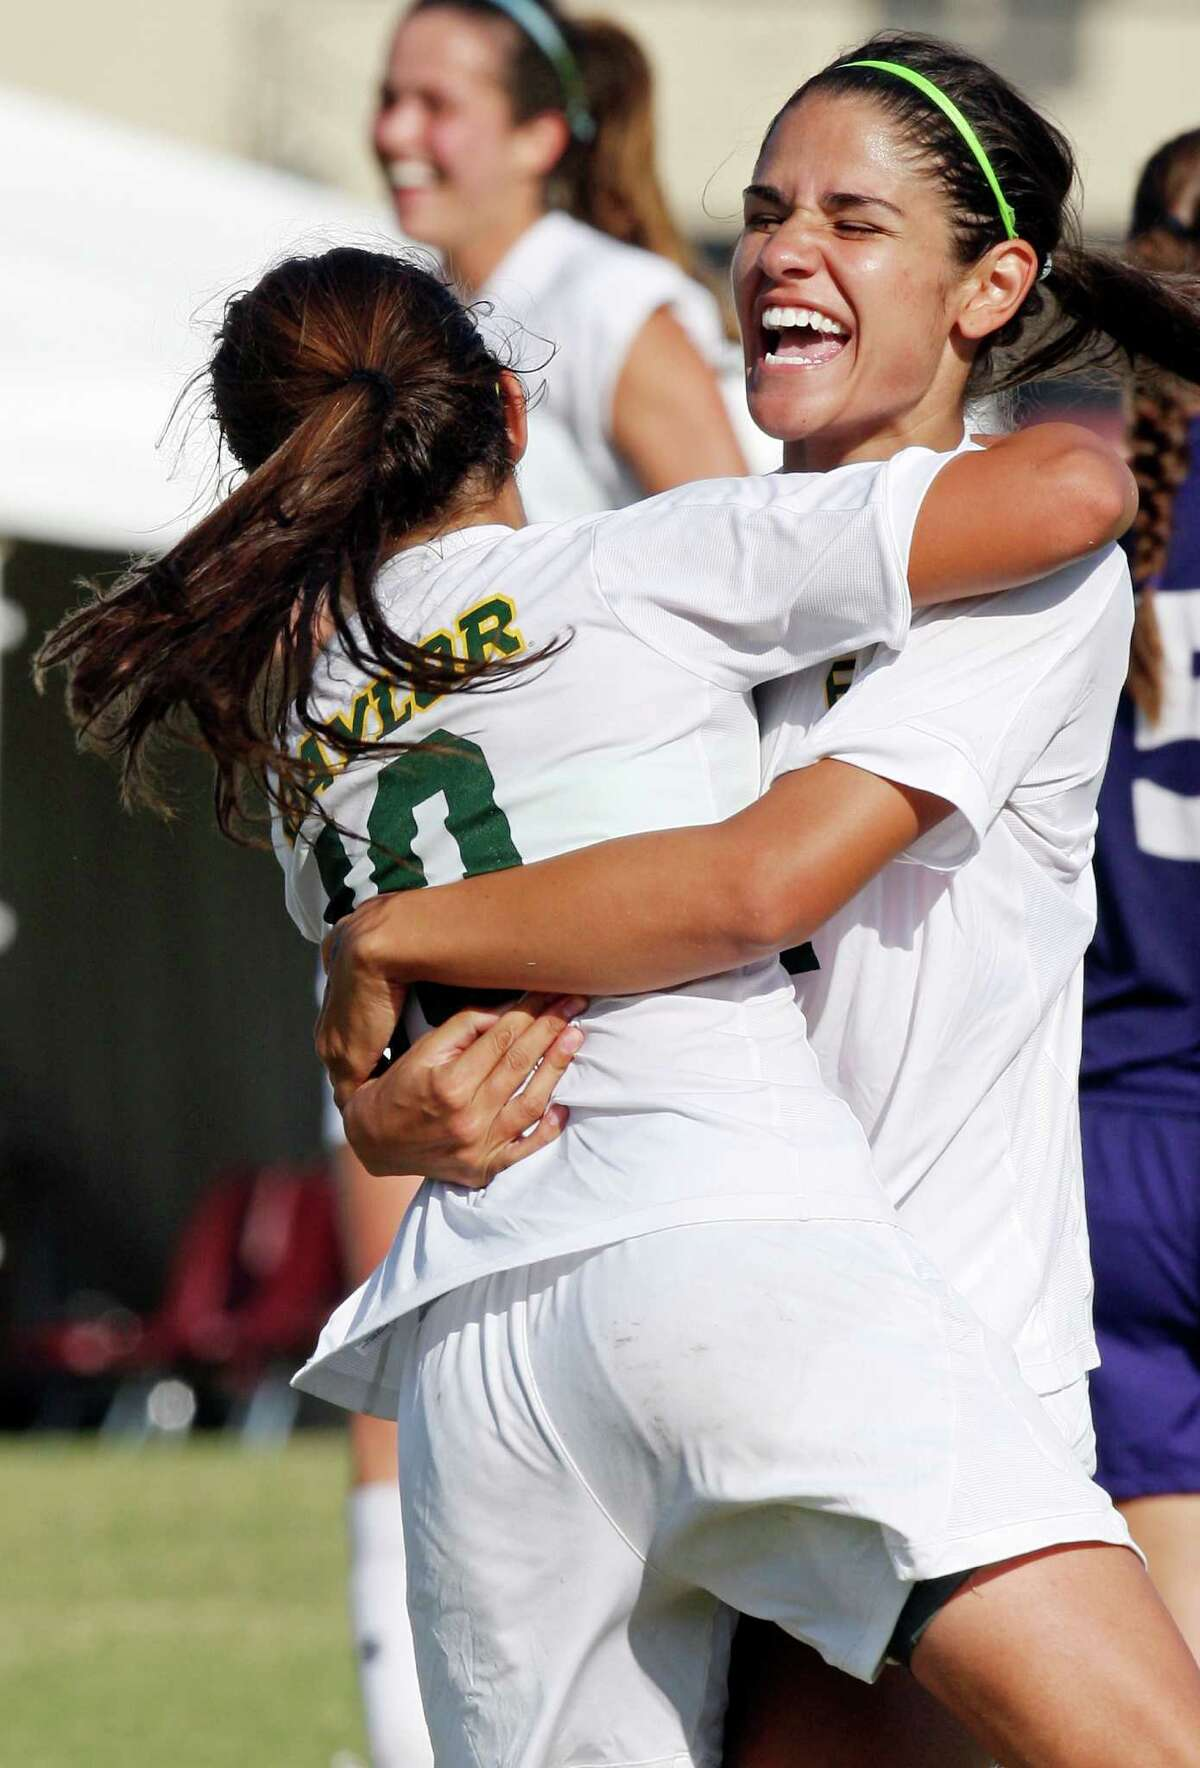 Baylor's Bri Campos (left) celebrates with Larissa Campos after Larissa scored a goal during second half action againt TCU Sunday Nov. 4, 2012 during the 2012 Big 12 Soccer Championship match. Baylor won 4-1.